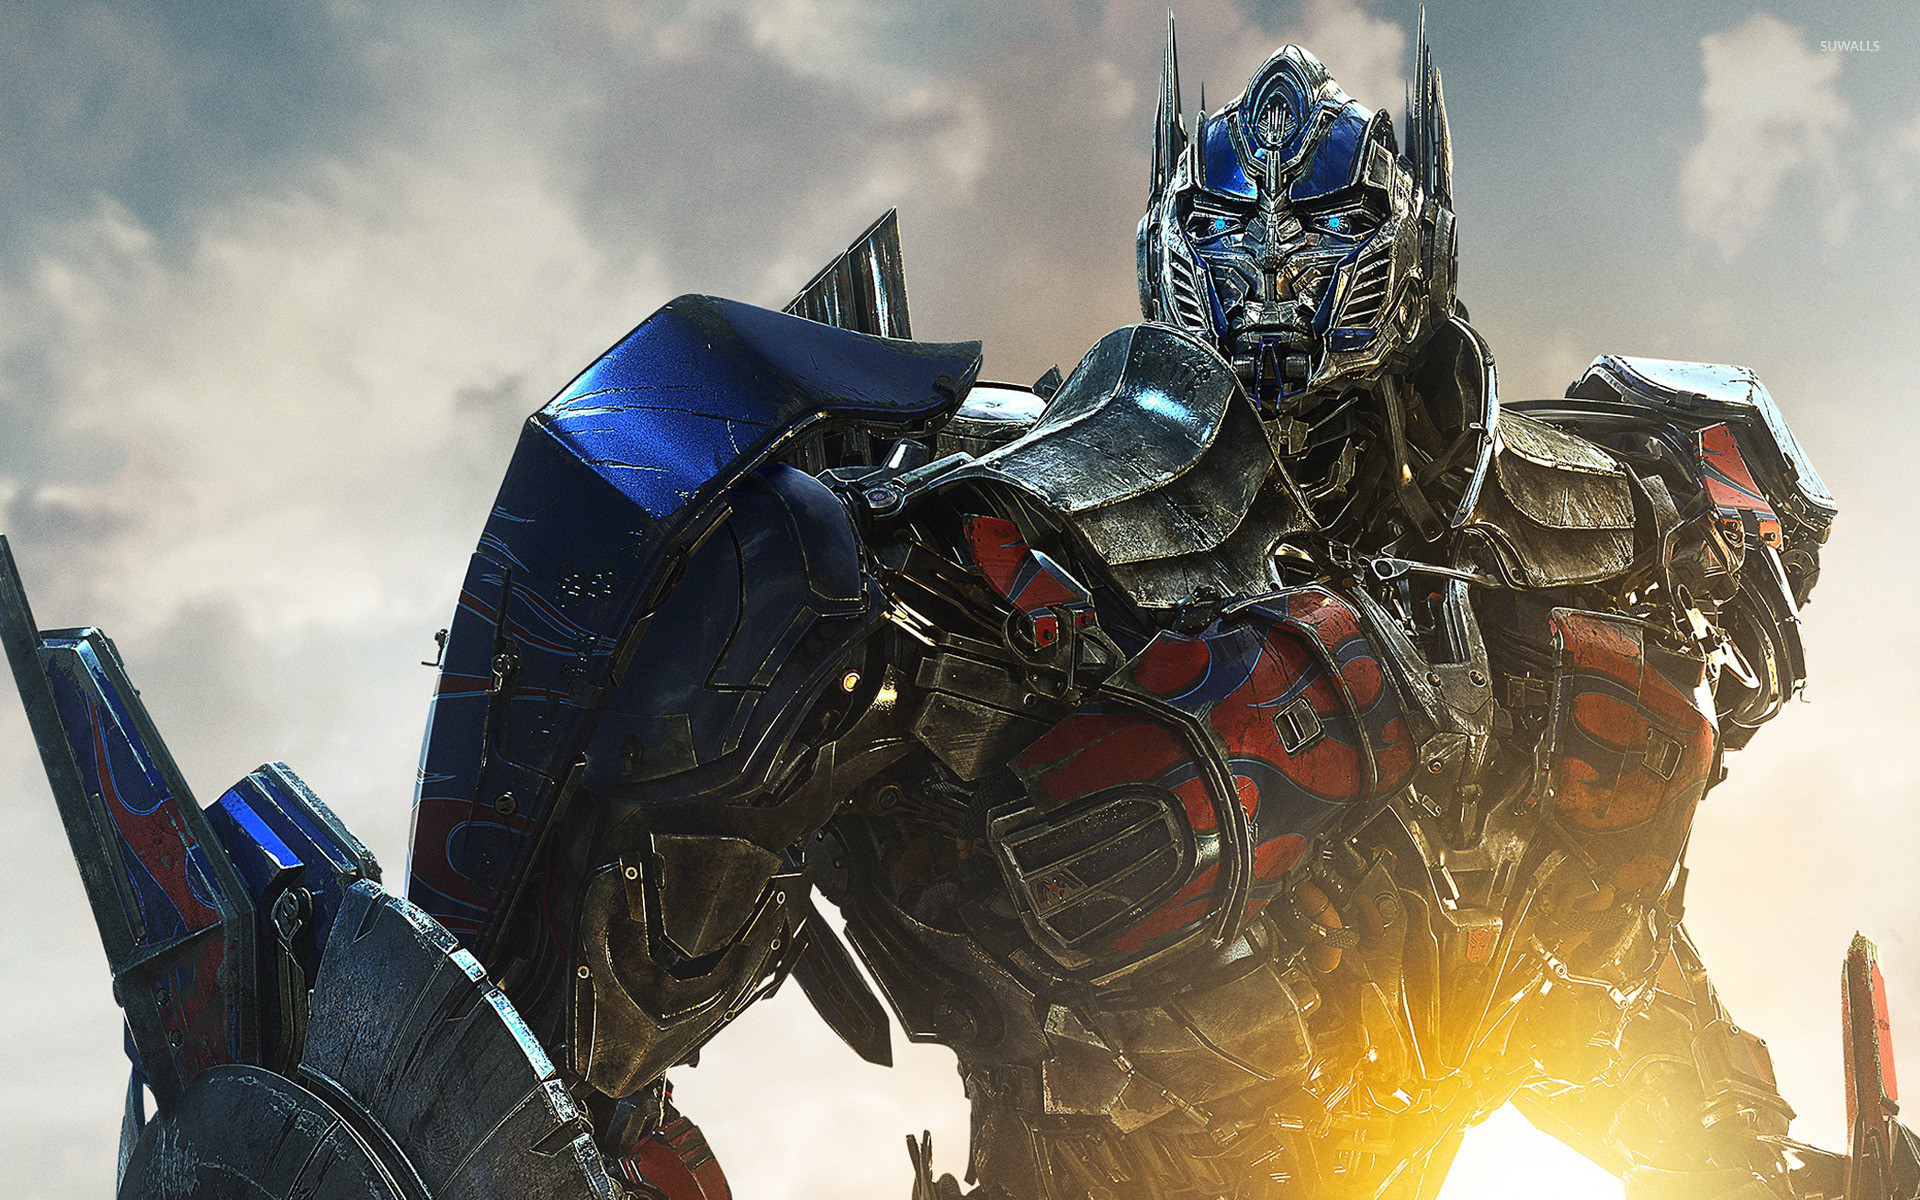 1920x1200 Optimus Prime - Transformers: Age of Extinction wallpaper  jpg